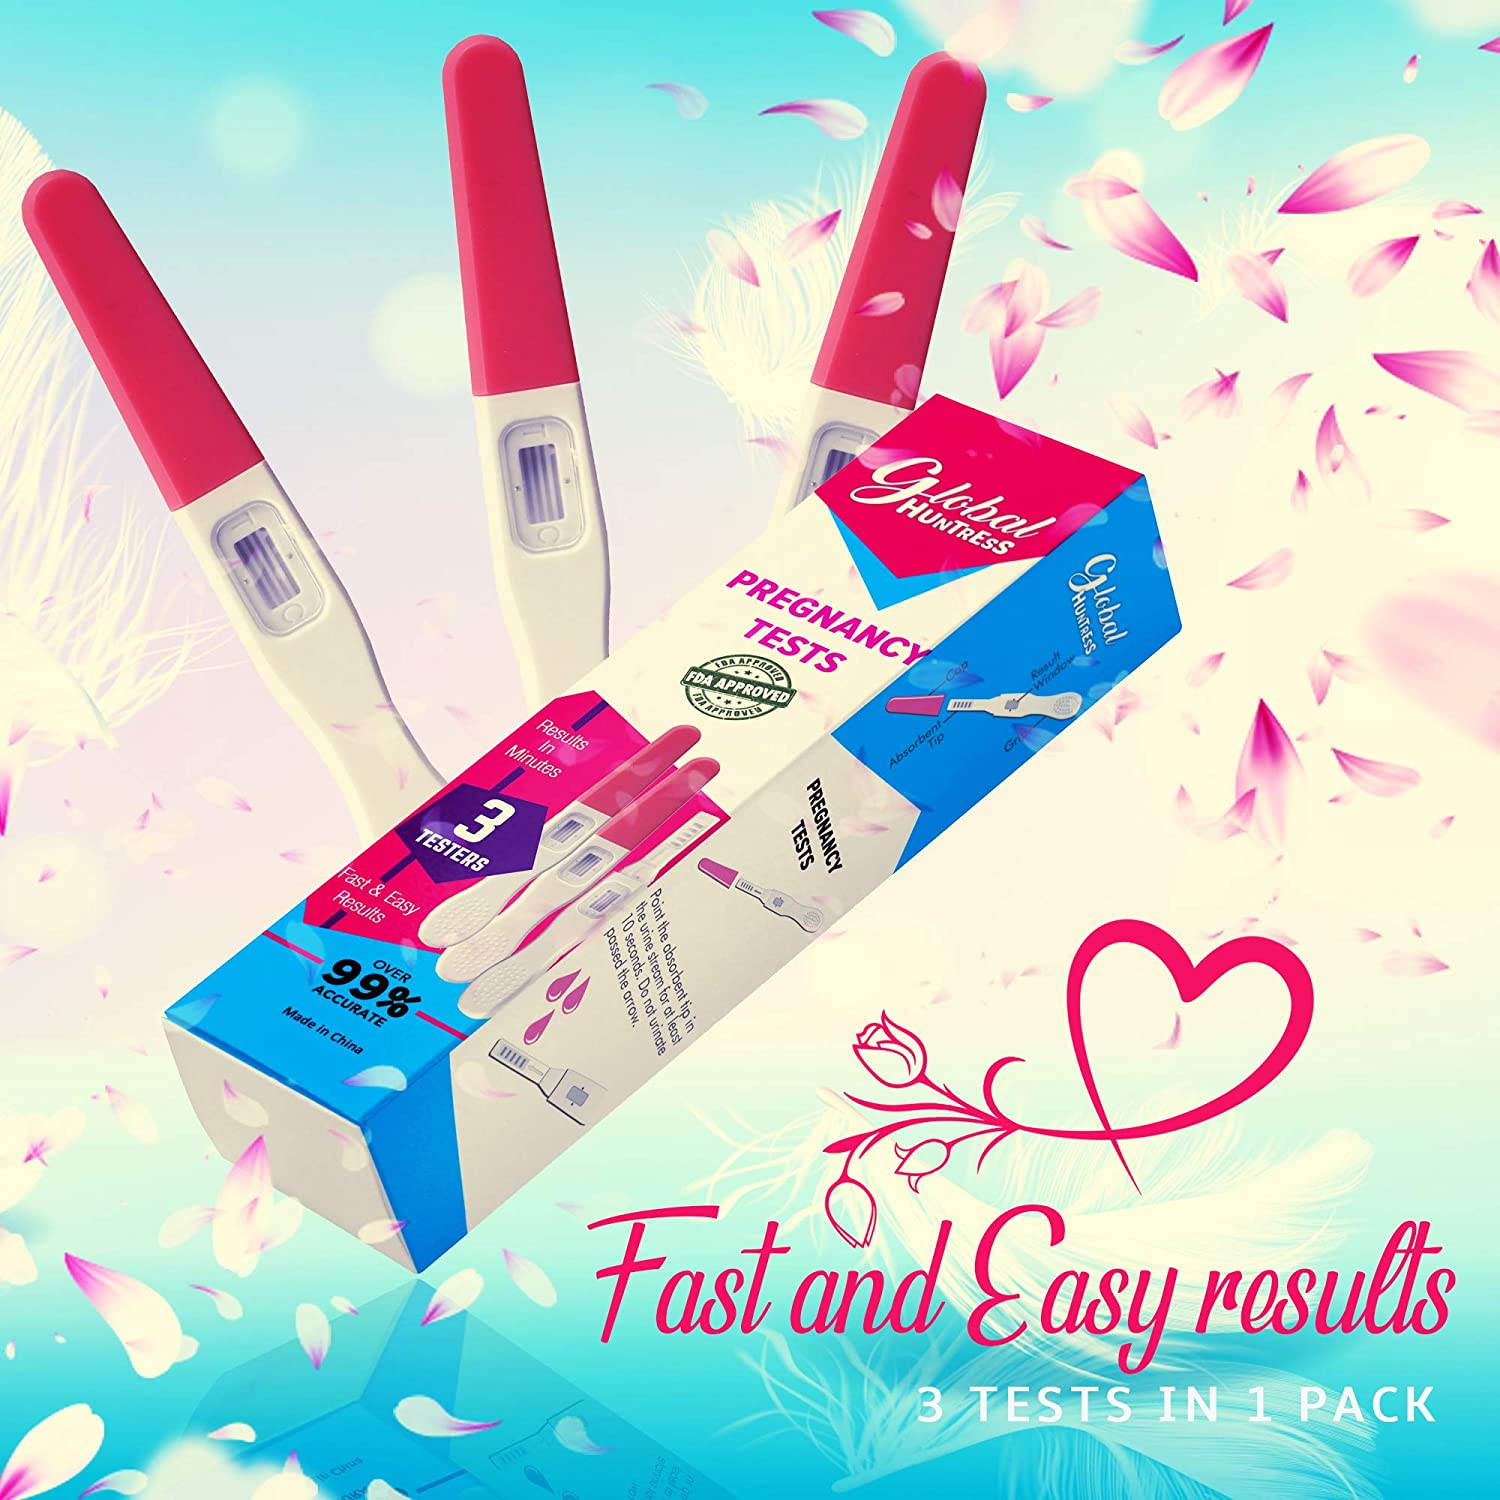 at-Home Early Pregnancy Test Kit   Early Detection 3 Tests Included - Accurate & Easy Response Results